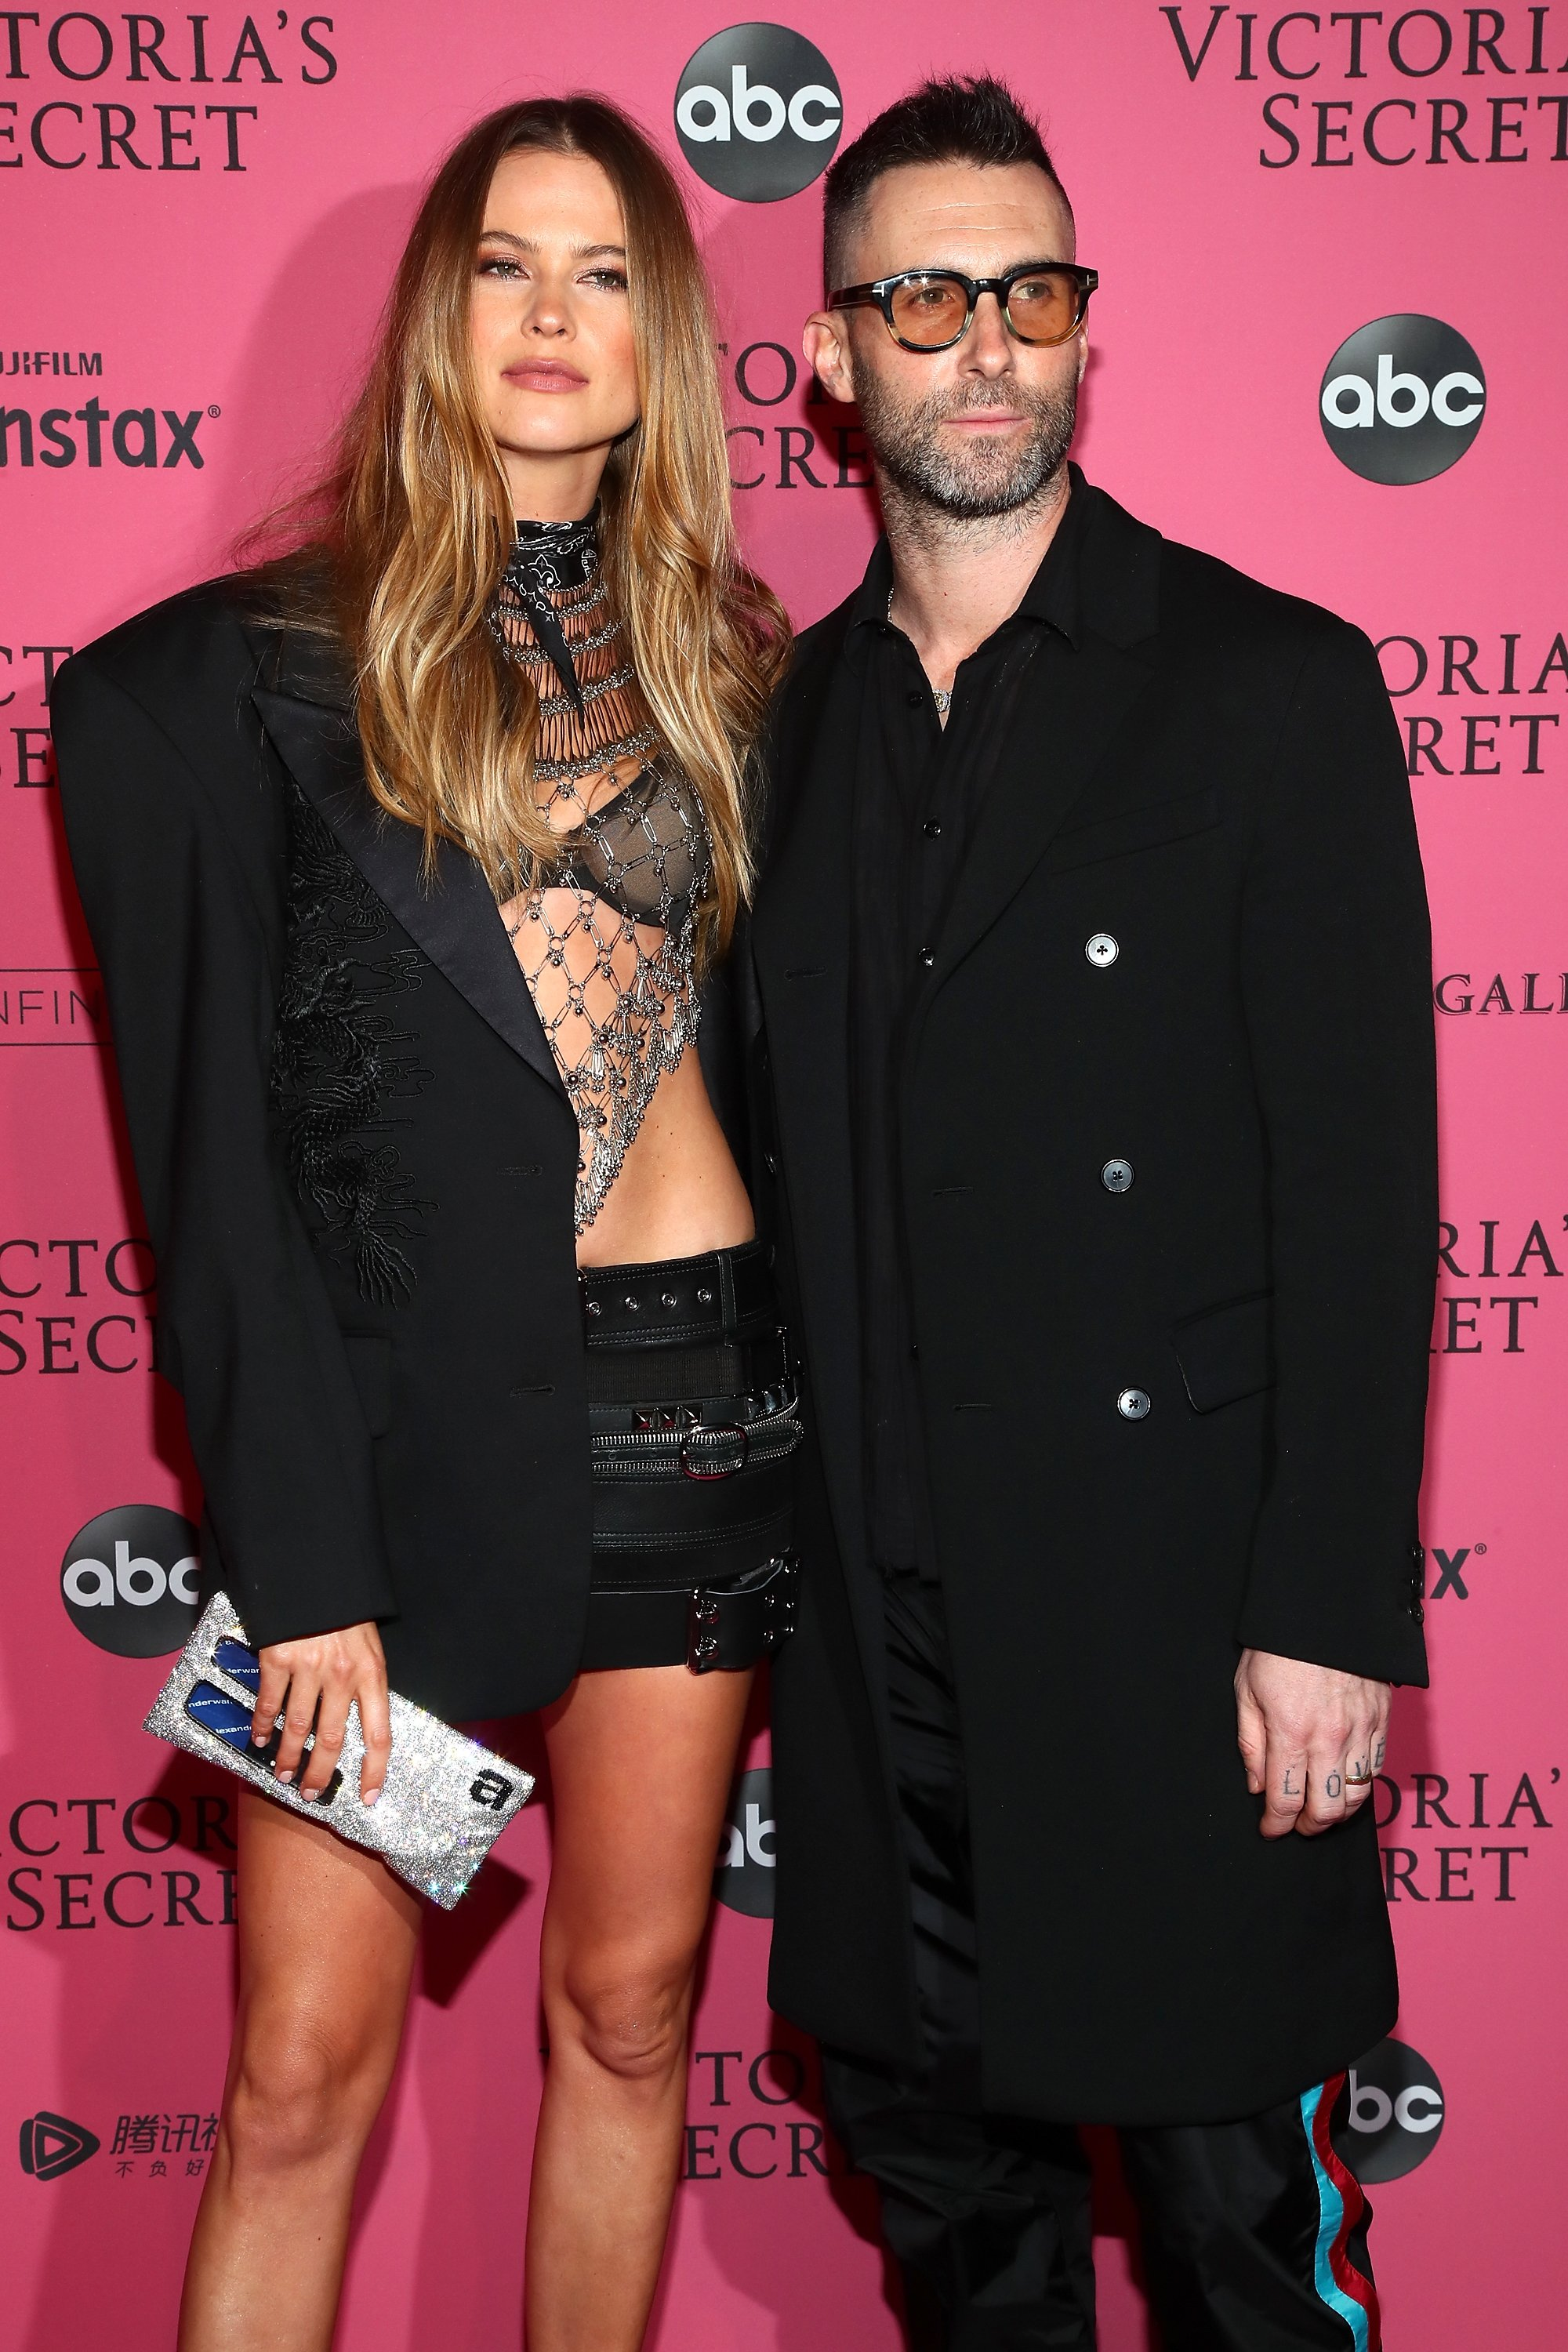 Behati Prinsloo and Adam Levine at the Victoria's Secret Fashion Show After Party on November 8, 2018   Photo: Getty Images